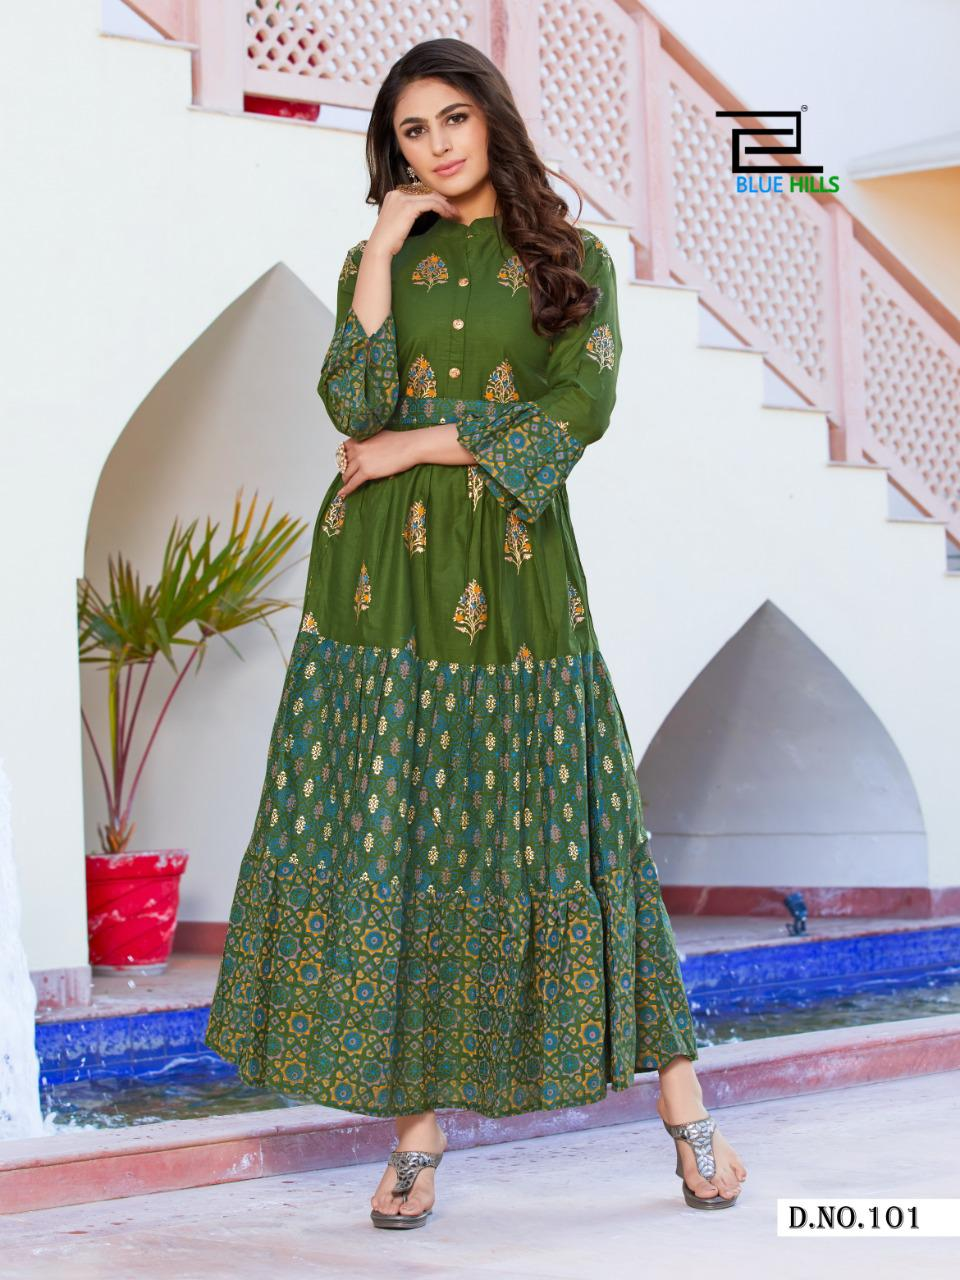 Blue Hills Gulabo Vol 1 Kurti Wholesale Catalog 8 Pcs 7 - Blue Hills Gulabo Vol 1 Kurti Wholesale Catalog 8 Pcs